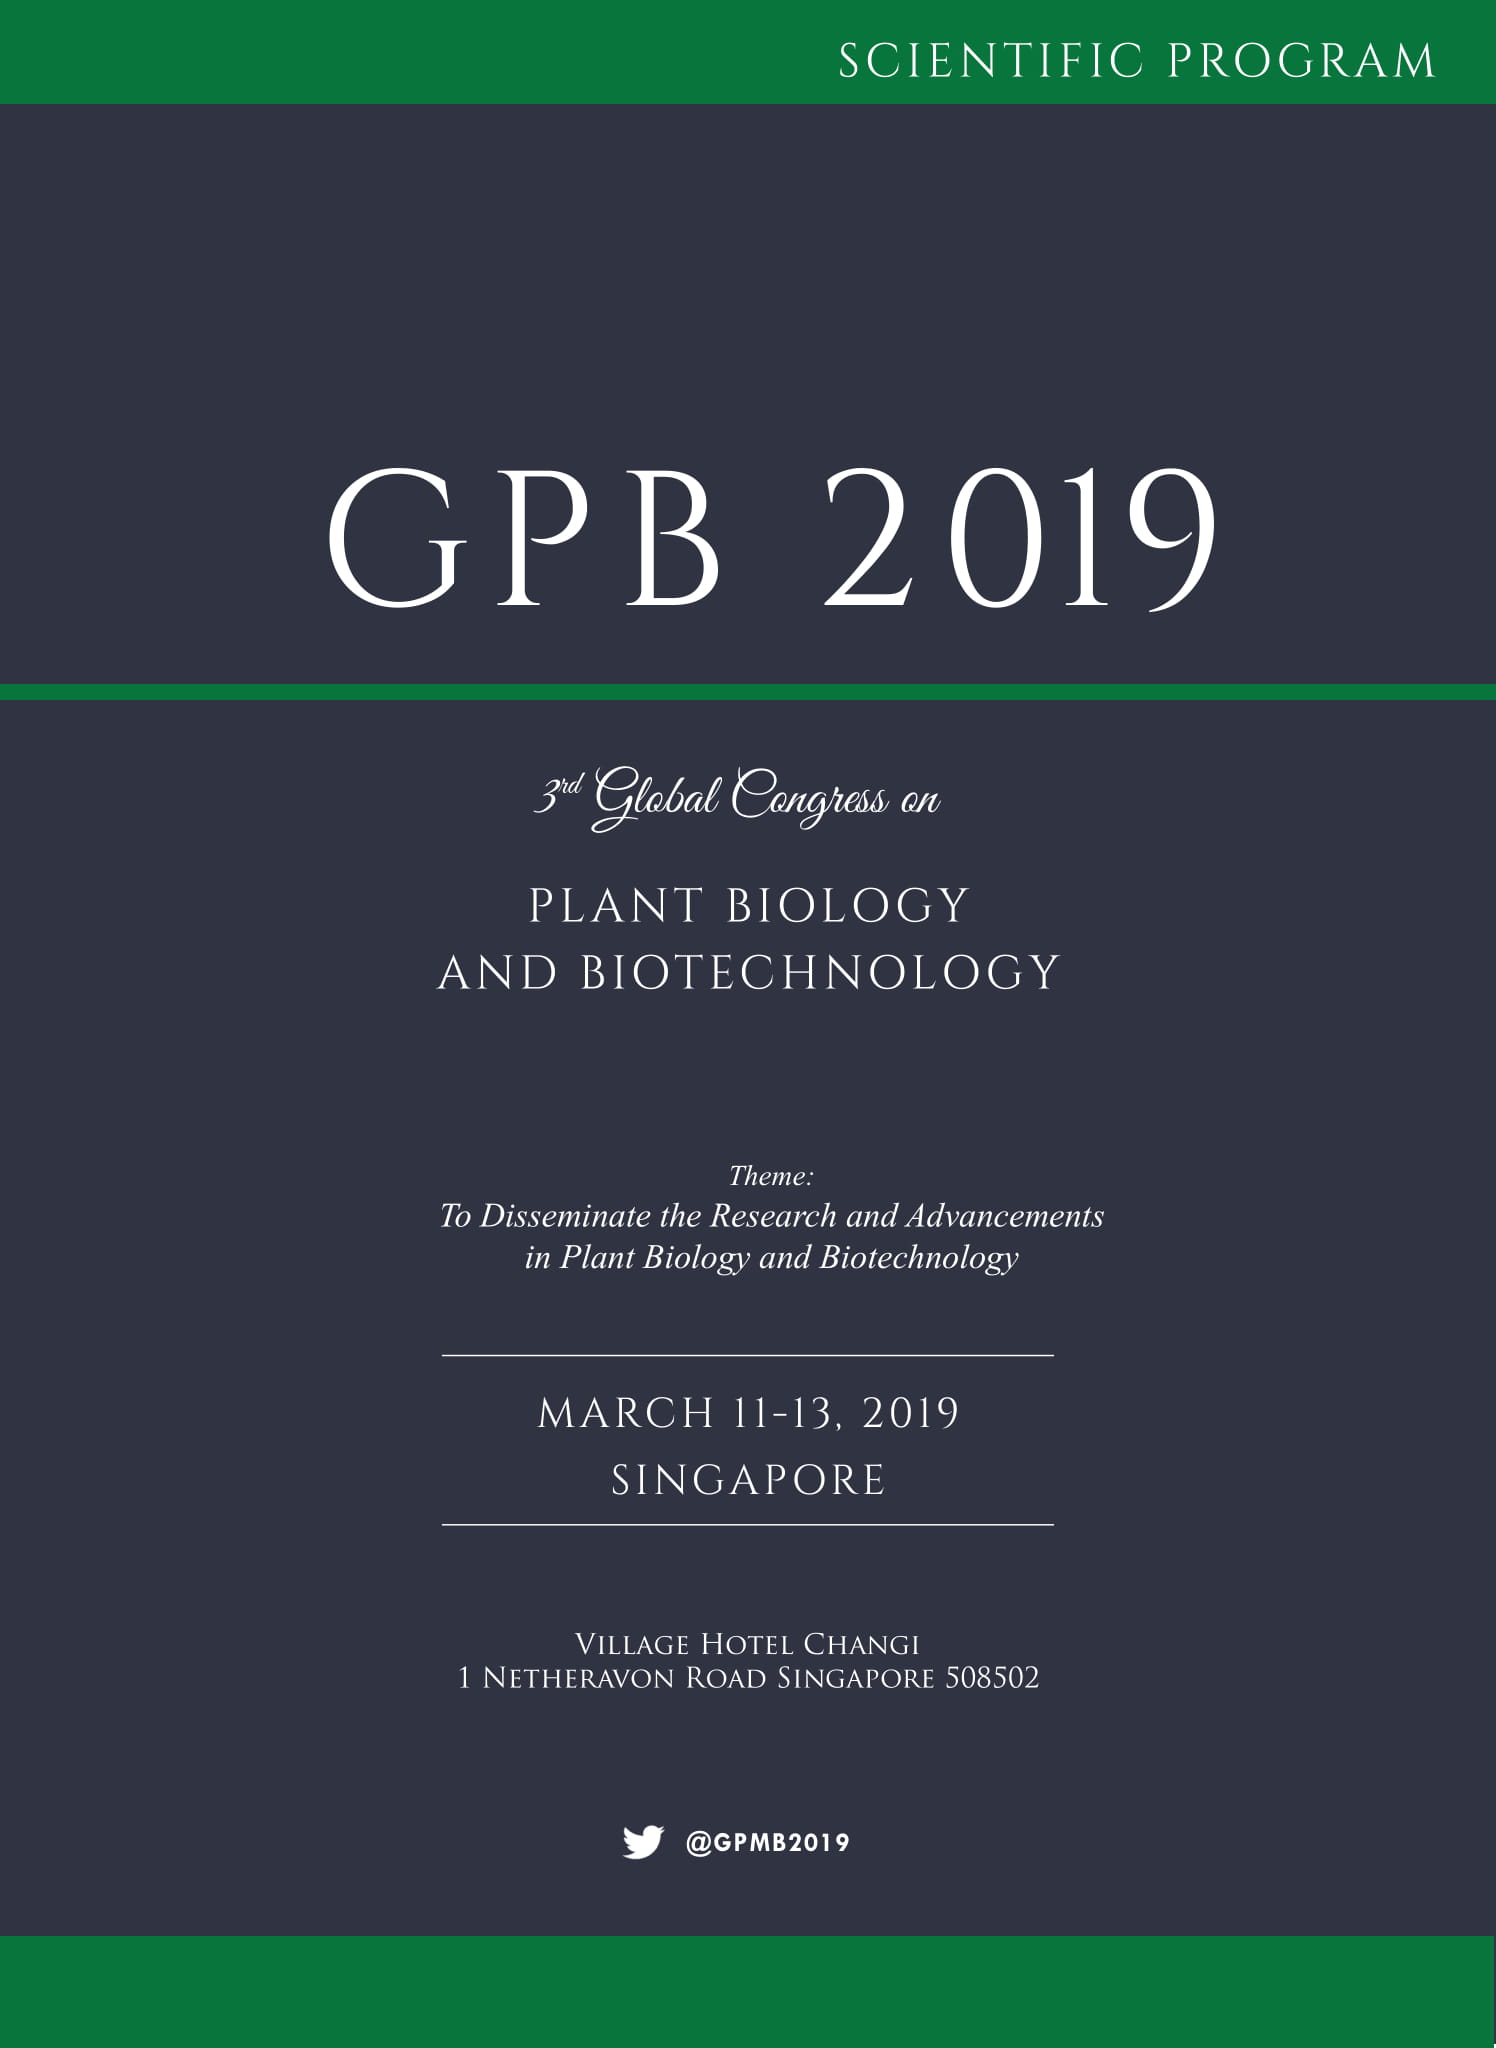 3rd Global Congress on Plant Biology and Biotechnology | Singapore Program